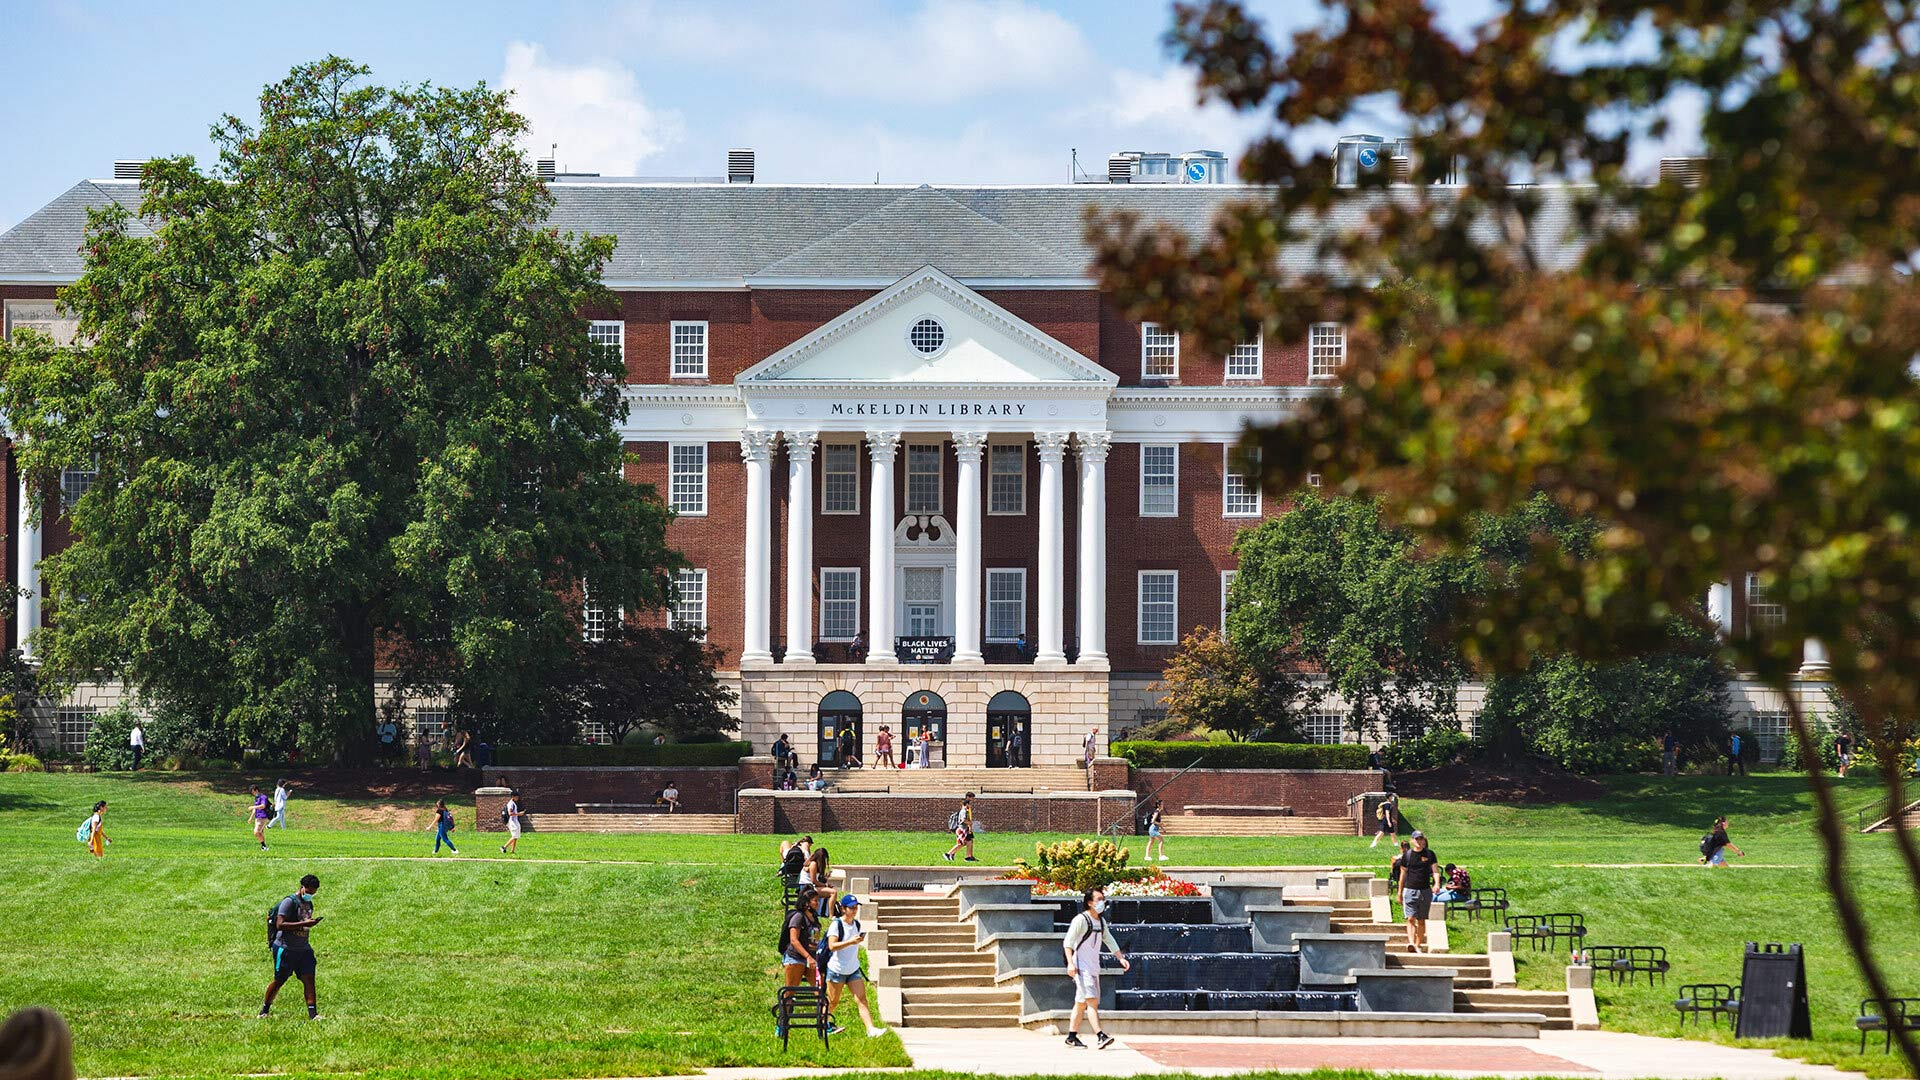 U.S. News & World Report ranked UMD No. 20 among the top public universities and No. 59 among national universities in its new ratings released today. Photo by Stephanie S. Cordle